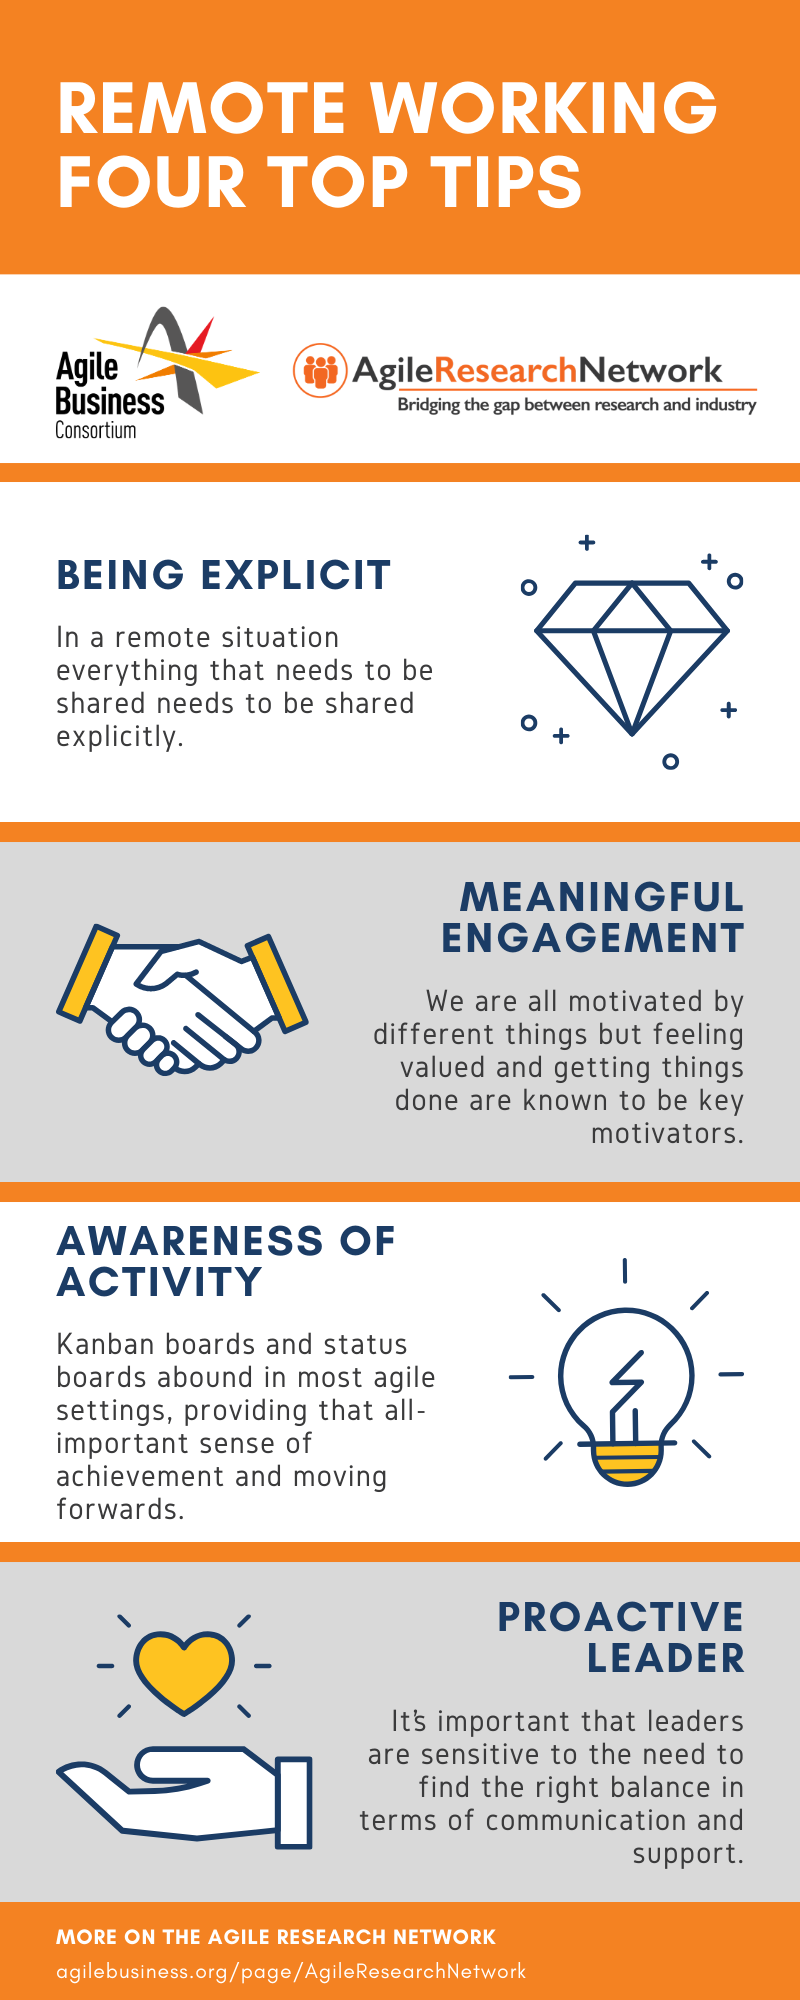 ARN remote working infographic